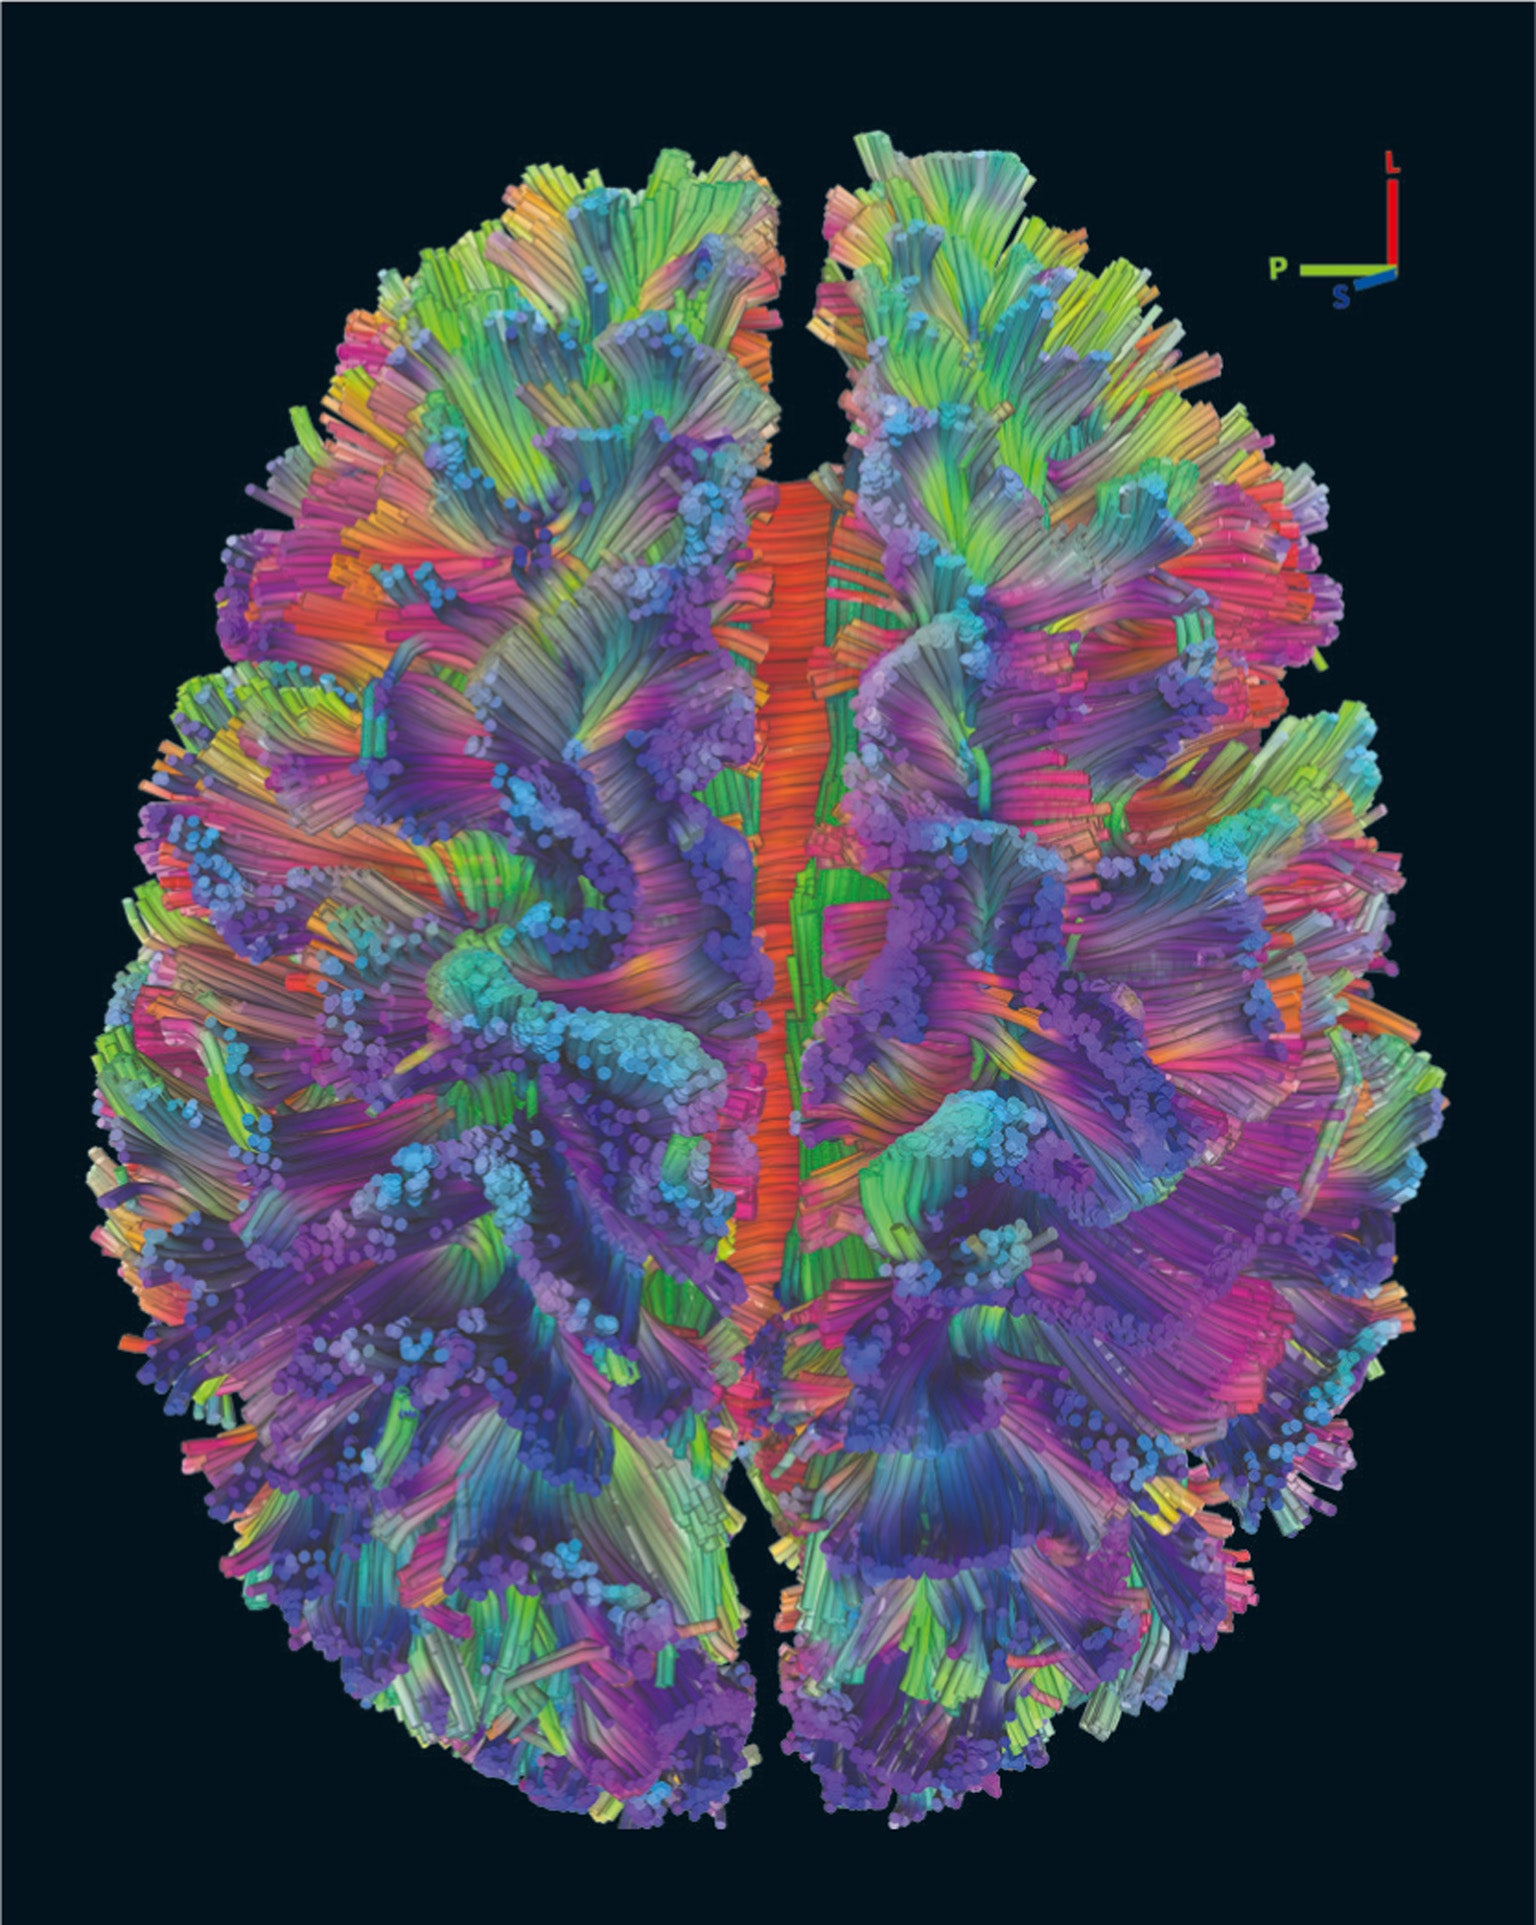 How the Mind Emerges from the Brain's Complex Networks